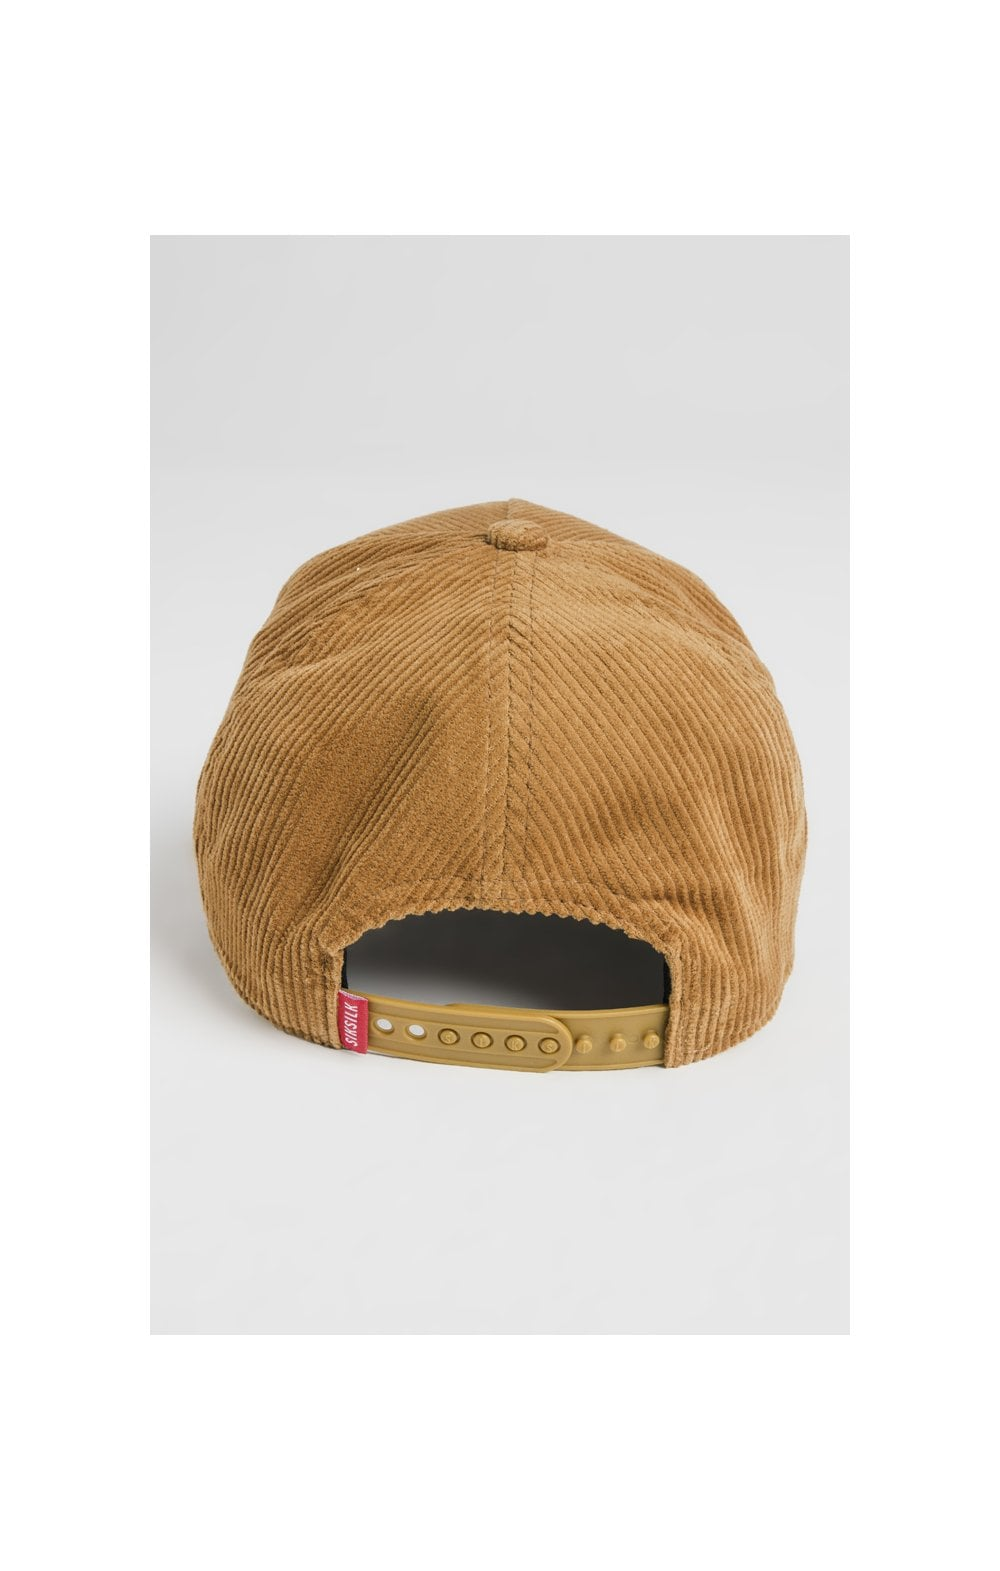 Load image into Gallery viewer, SikSilk Corduroy Full Trucker - Mustard (5)